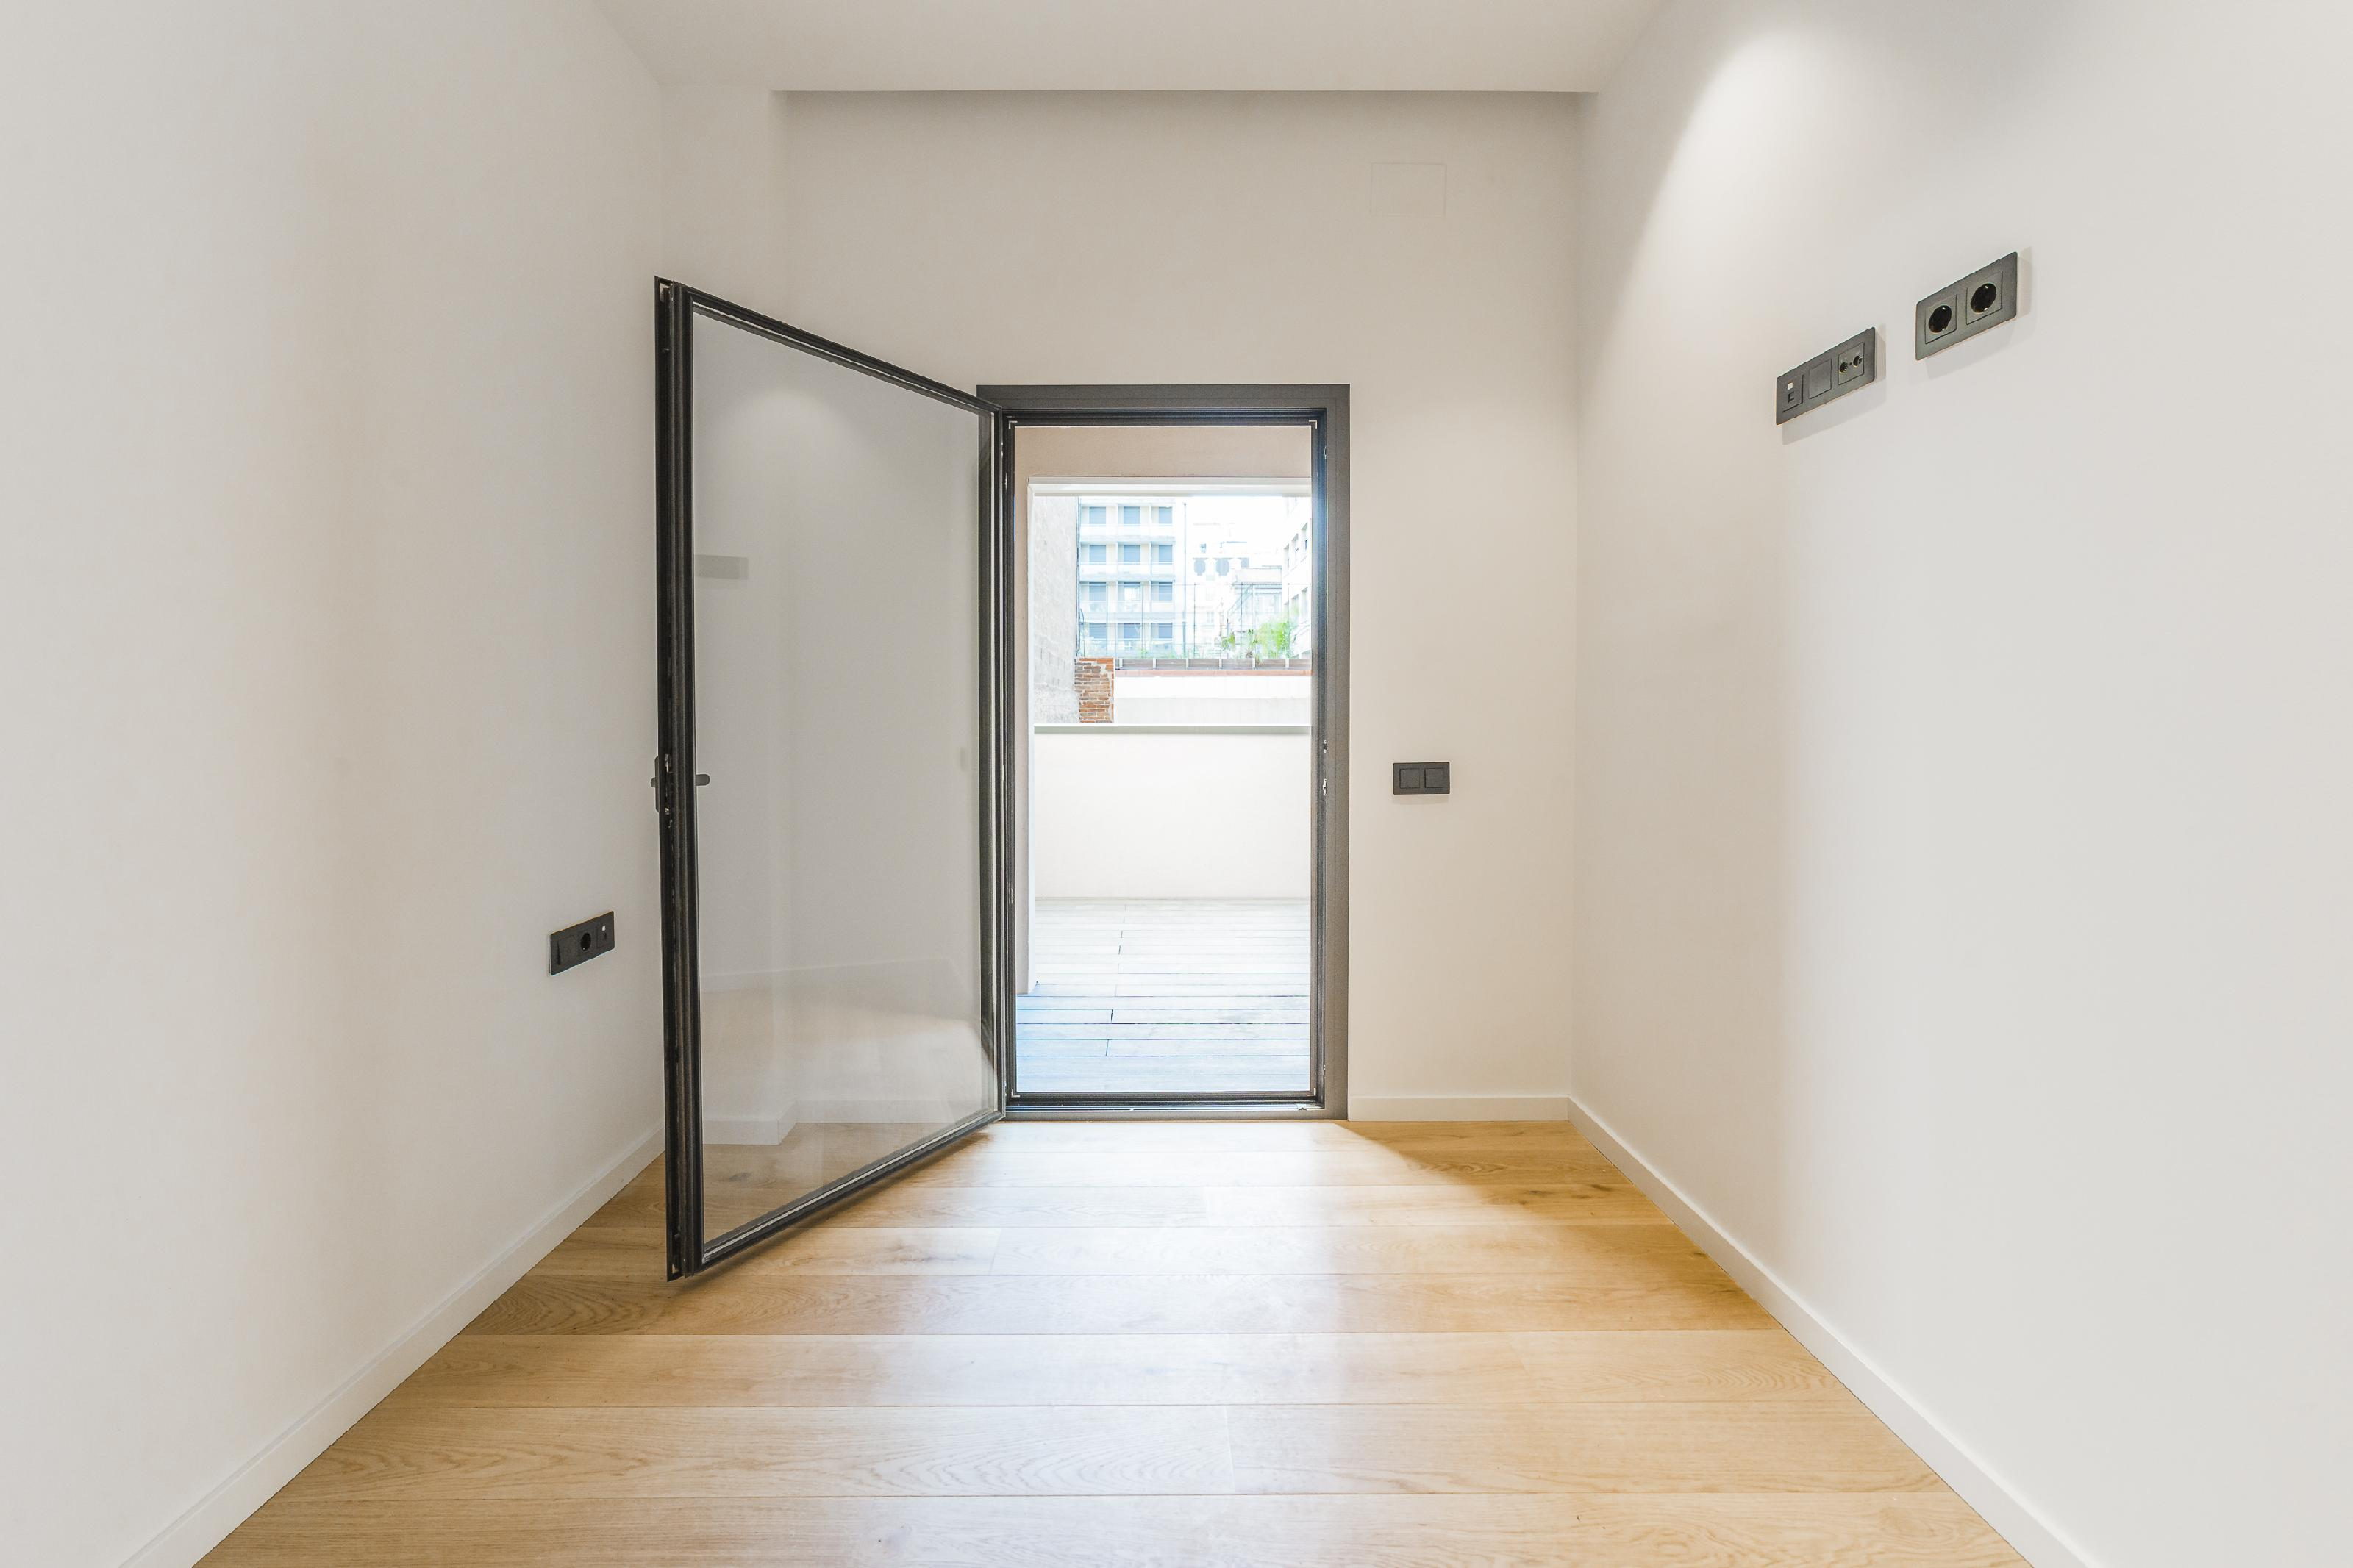 182176 Apartment for sale in Eixample, Old Left Eixample 22